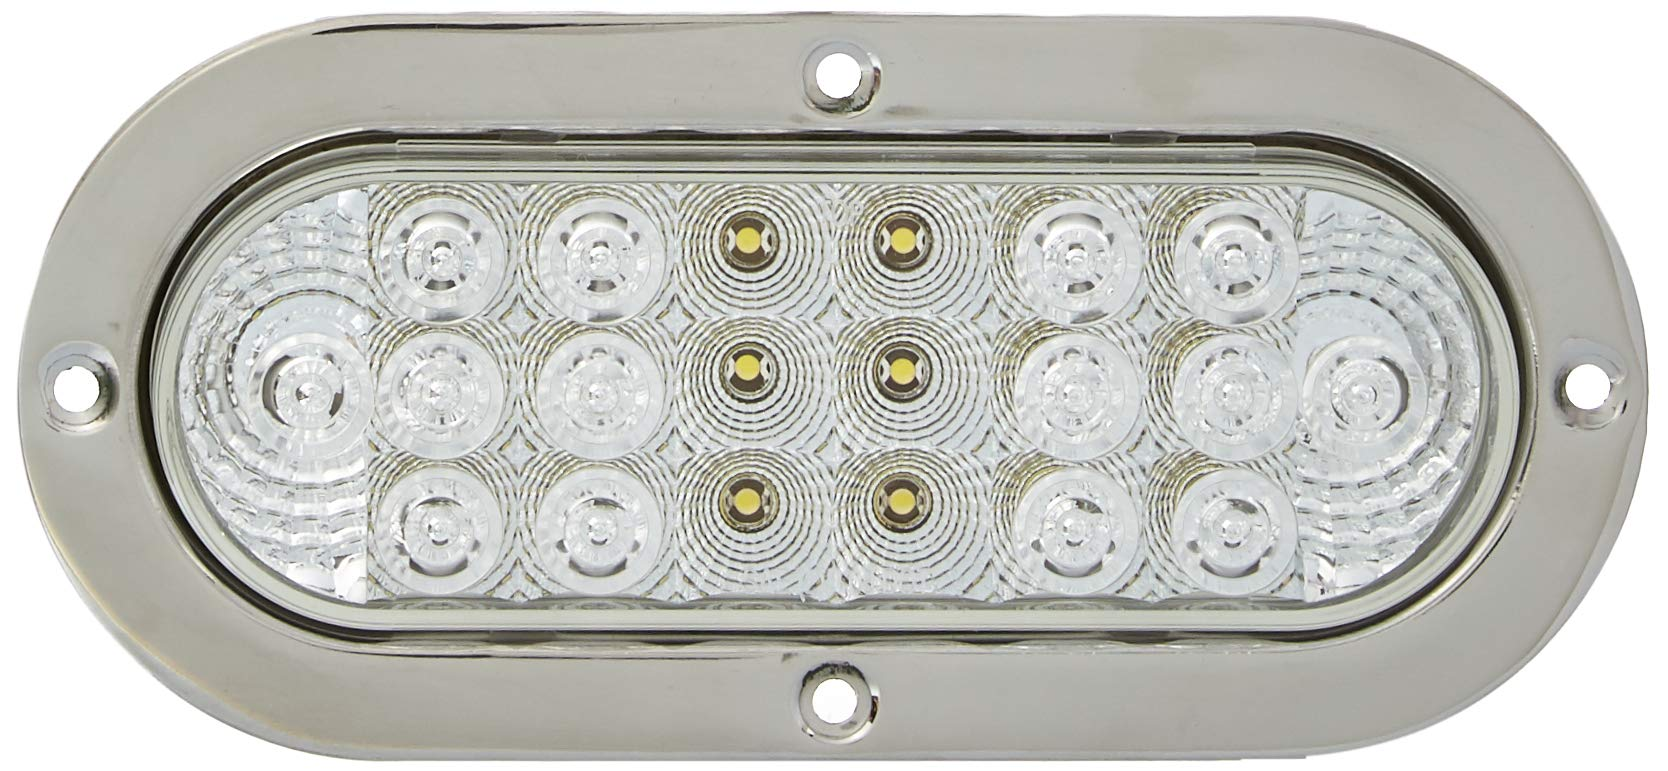 GG Grand General 77022 Oval Low Profile Spyder White Led Light with S.S. Rim & Pigtail by GG Grand General